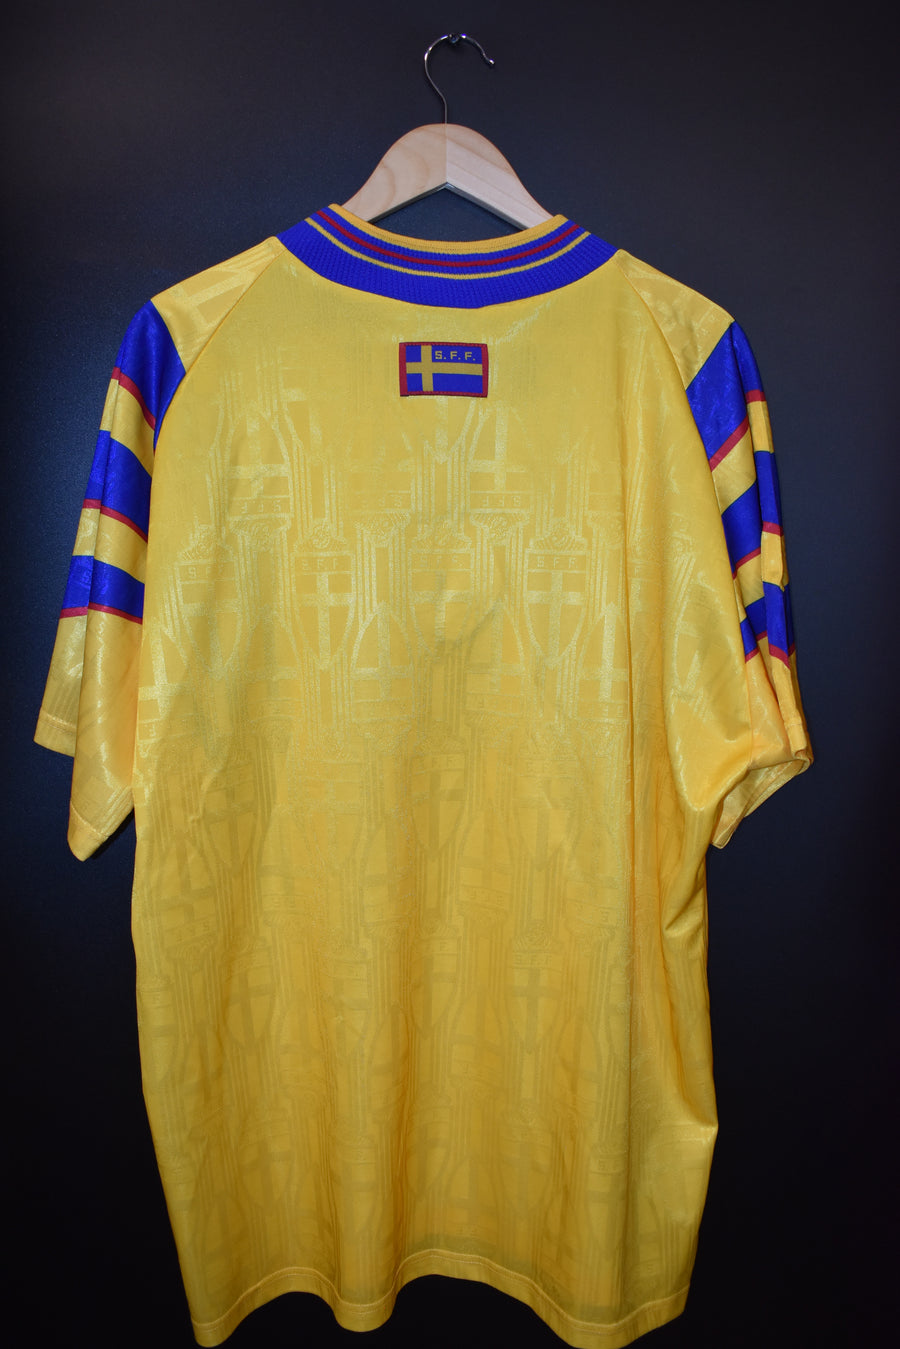 SWEDEN 1996-1998  ORIGINAL JERSEY Size XL (VERY GOOD)